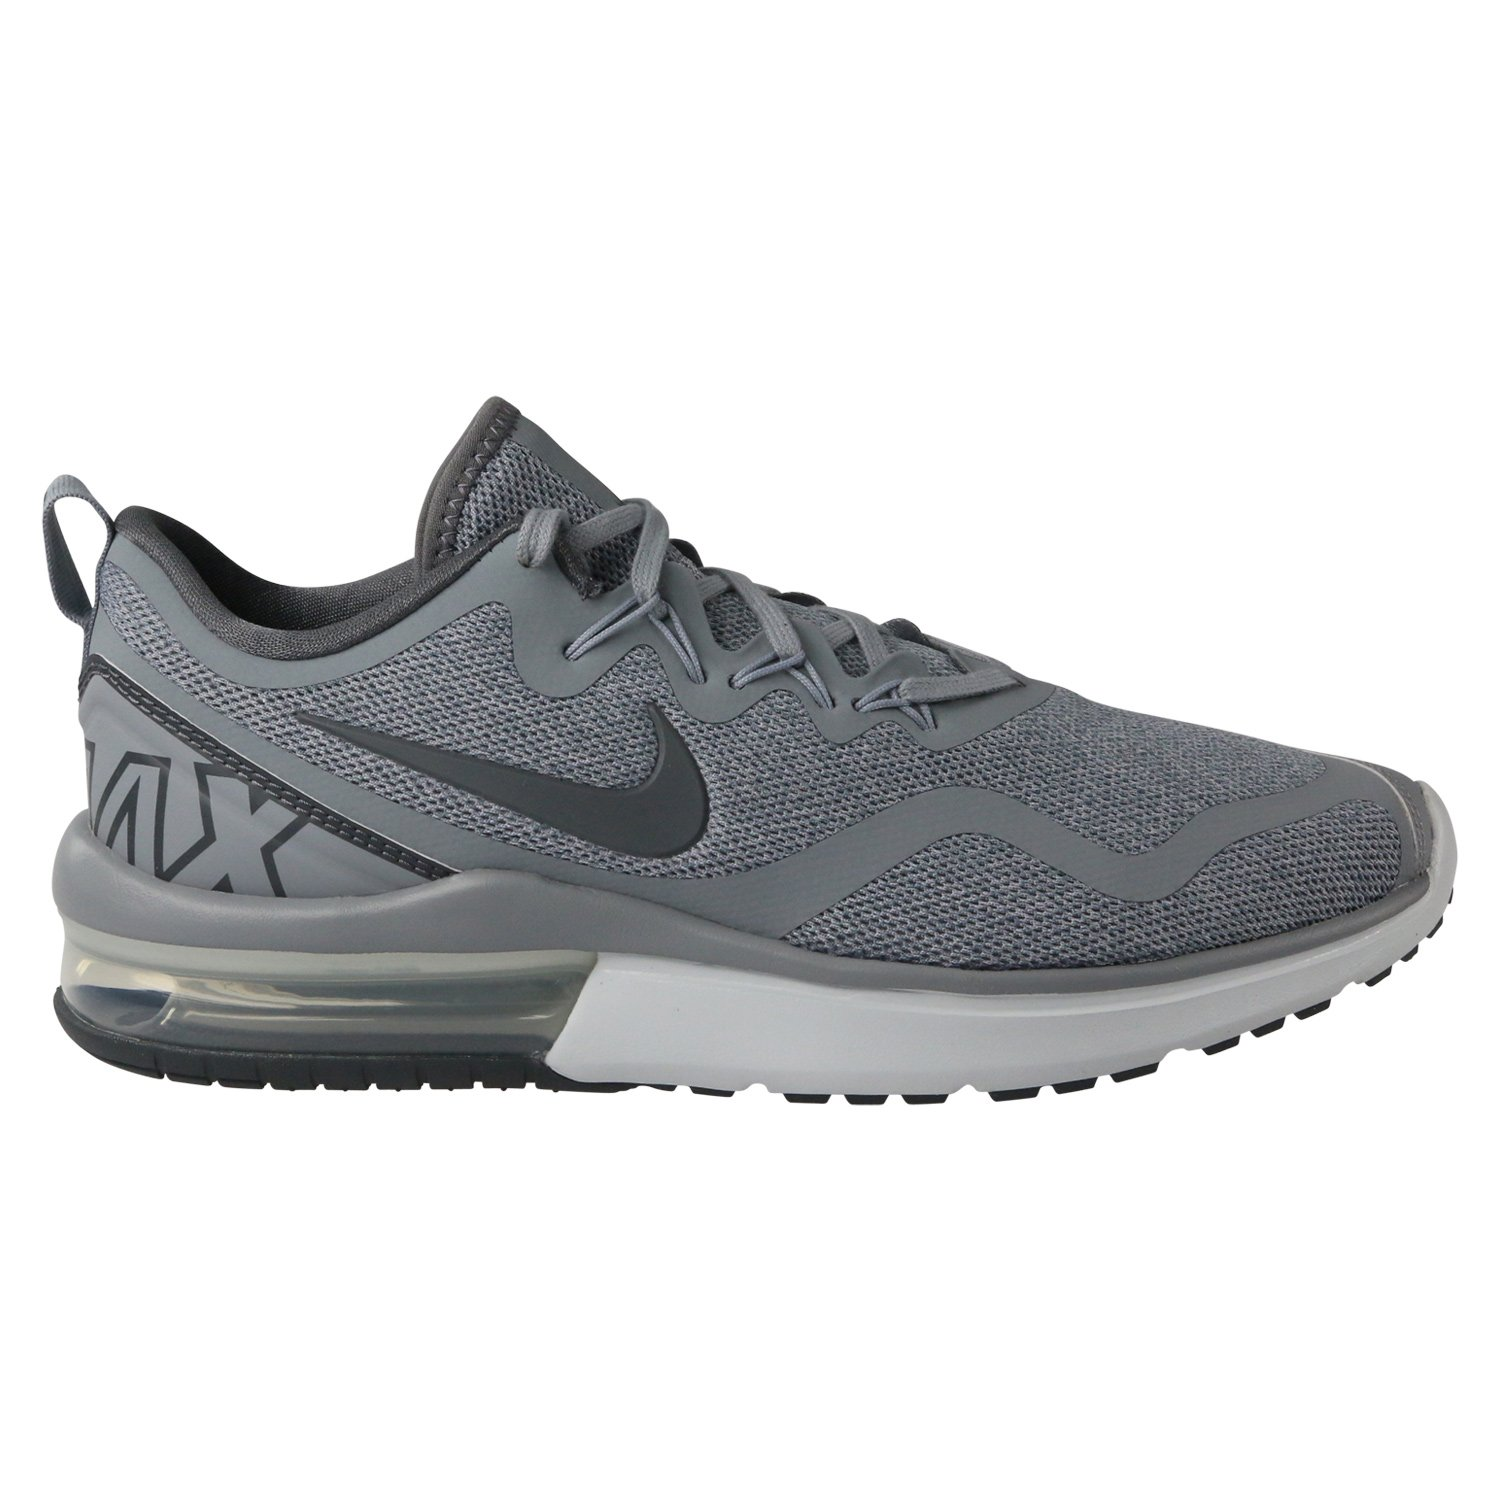 Nike Men's Air Max Fury Running Shoe Wolf GreyDark GreyStealth Size 11.5 M US